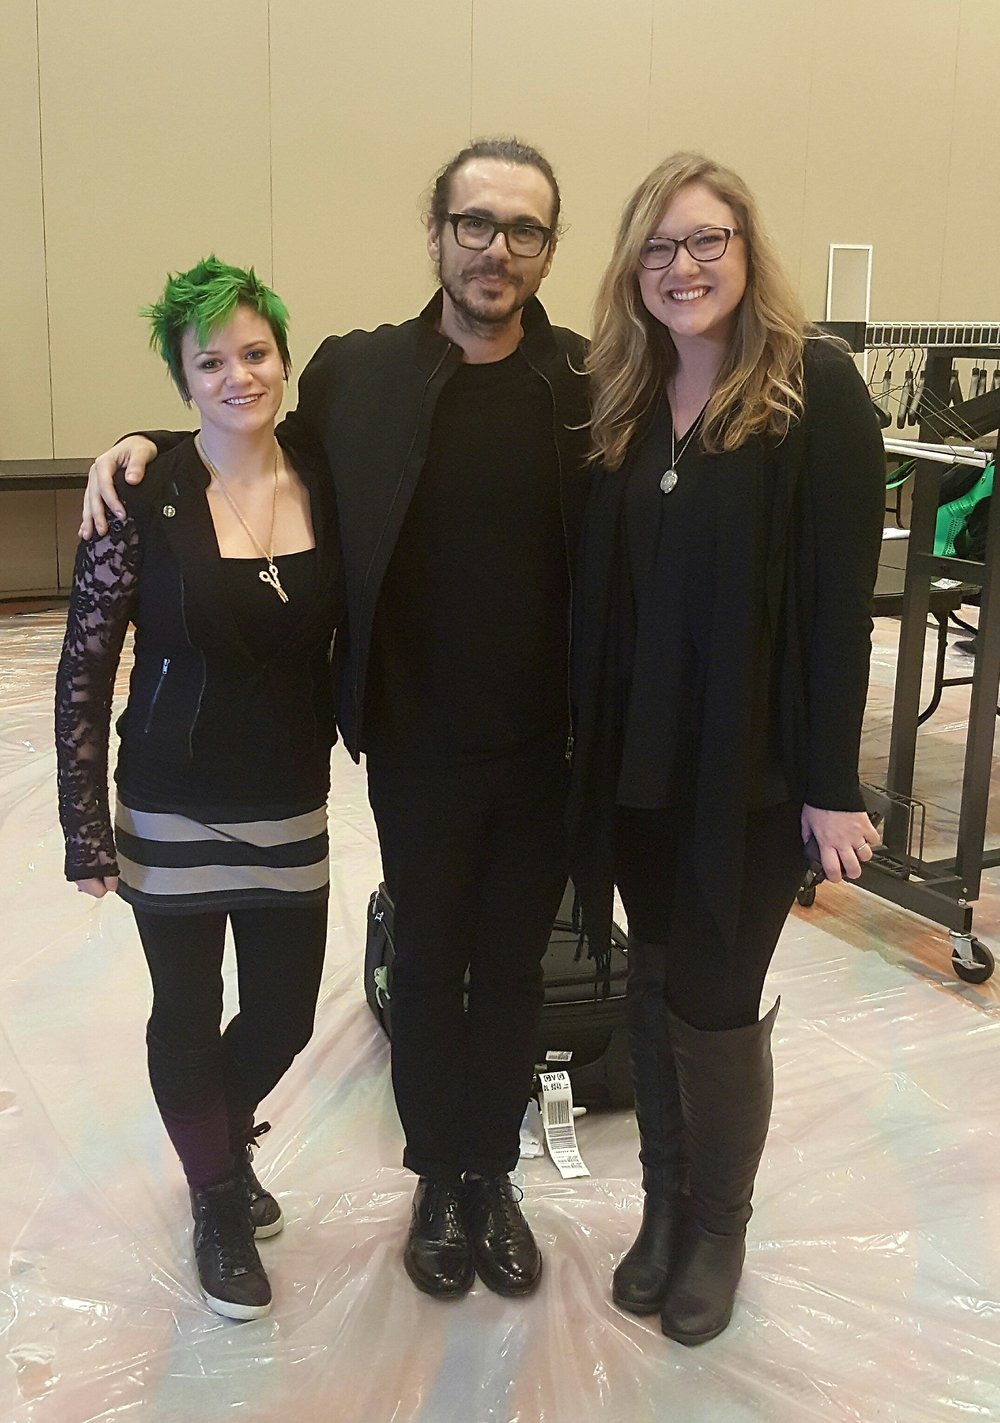 Student Hailey Hughes, Aveda Global Artistic Director of Haircutting Ricardo Dinis, and student dasha Olecki